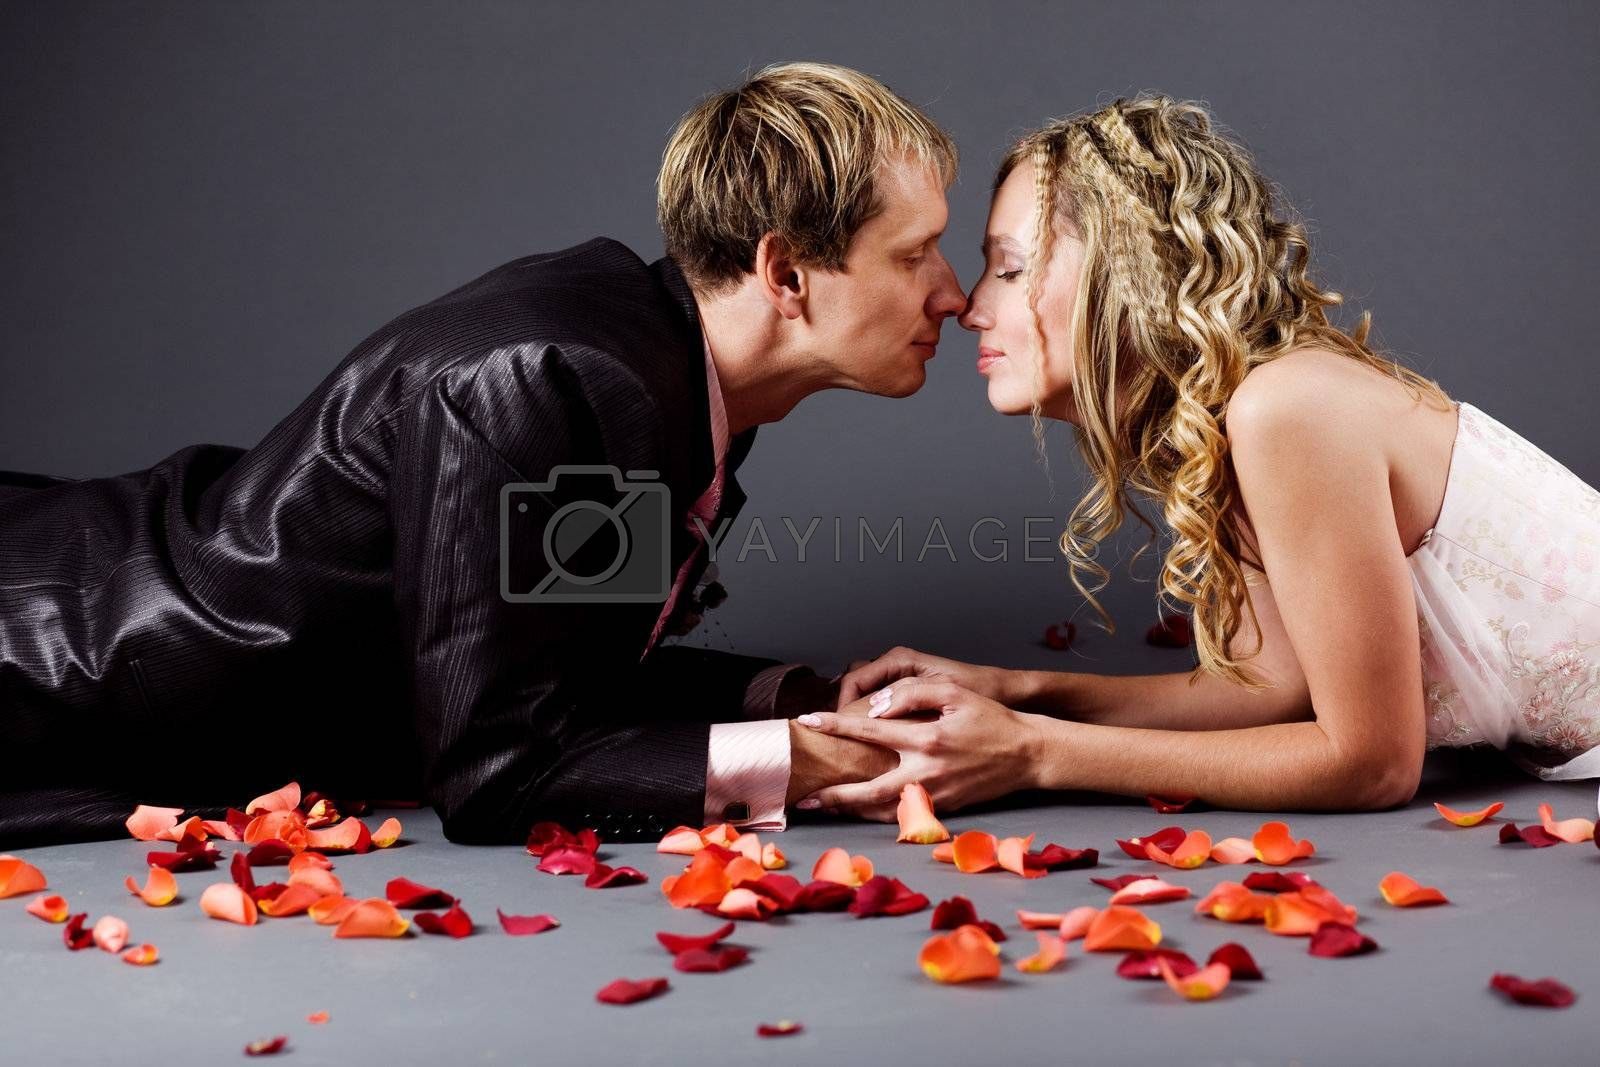 Kissing wedding couple lying among rose petals on gray studio background